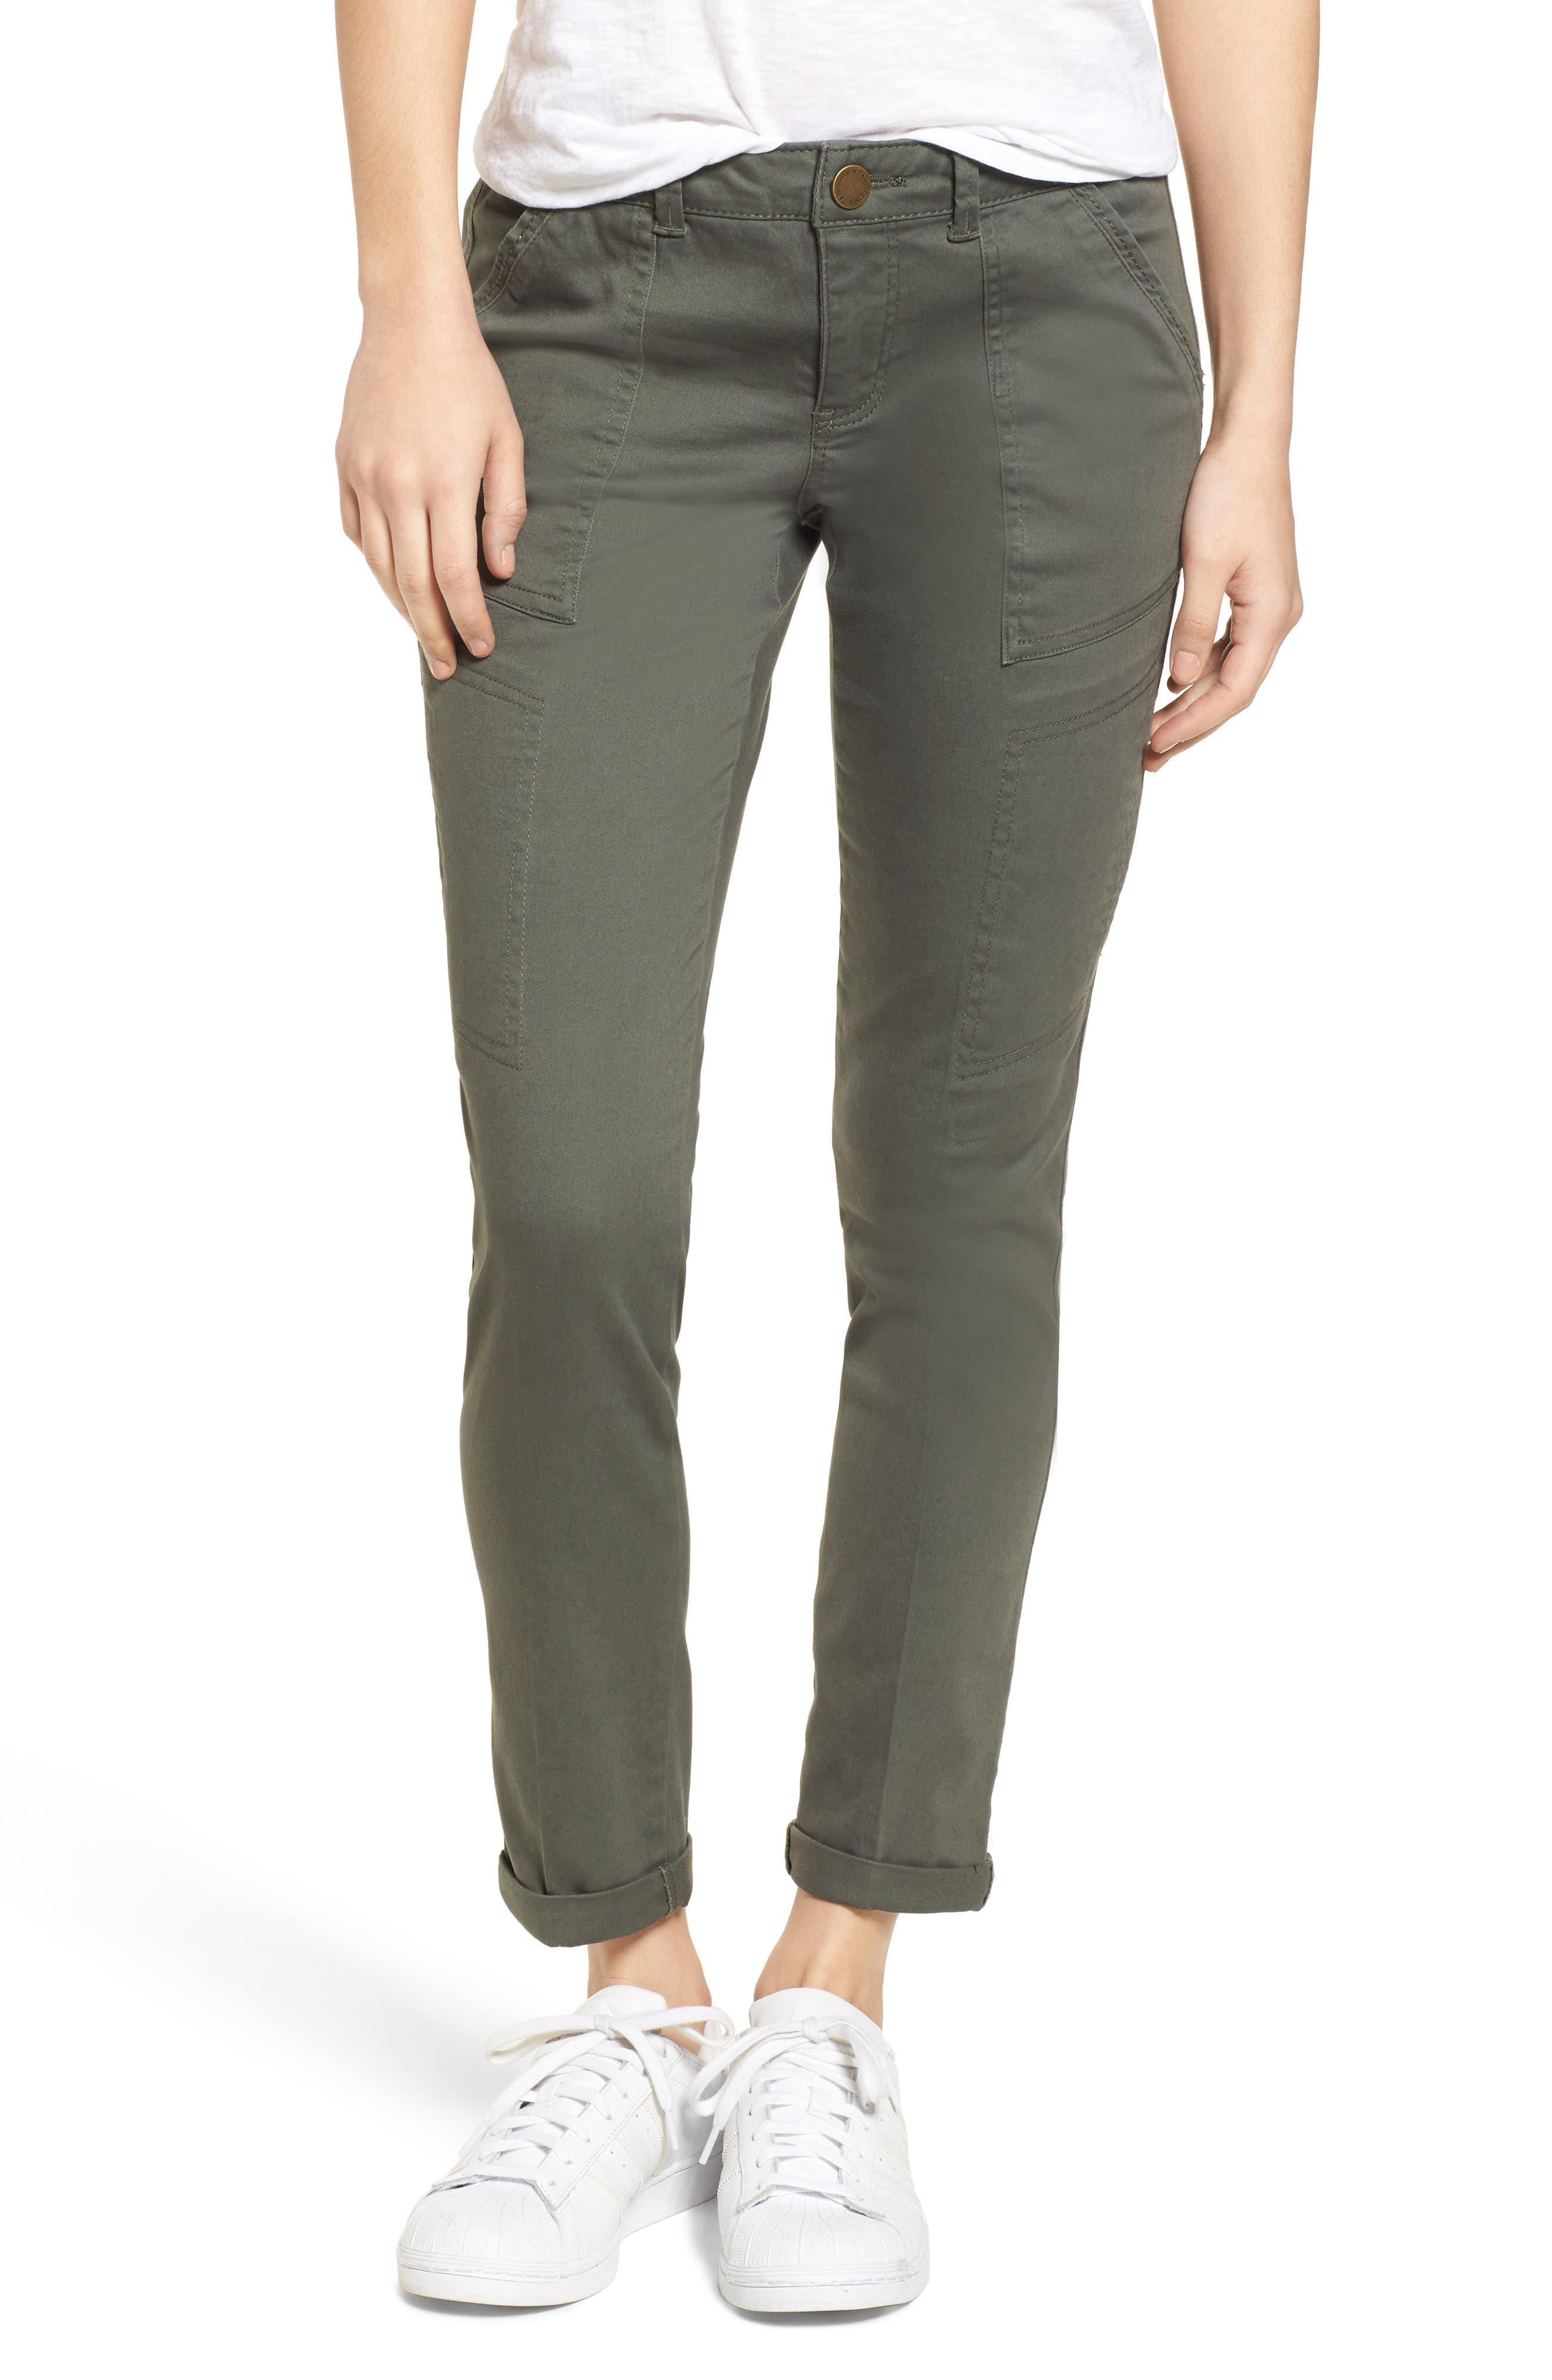 Wit & Wisdom Twill Cargo Pants (Nordstrom Exclusive)